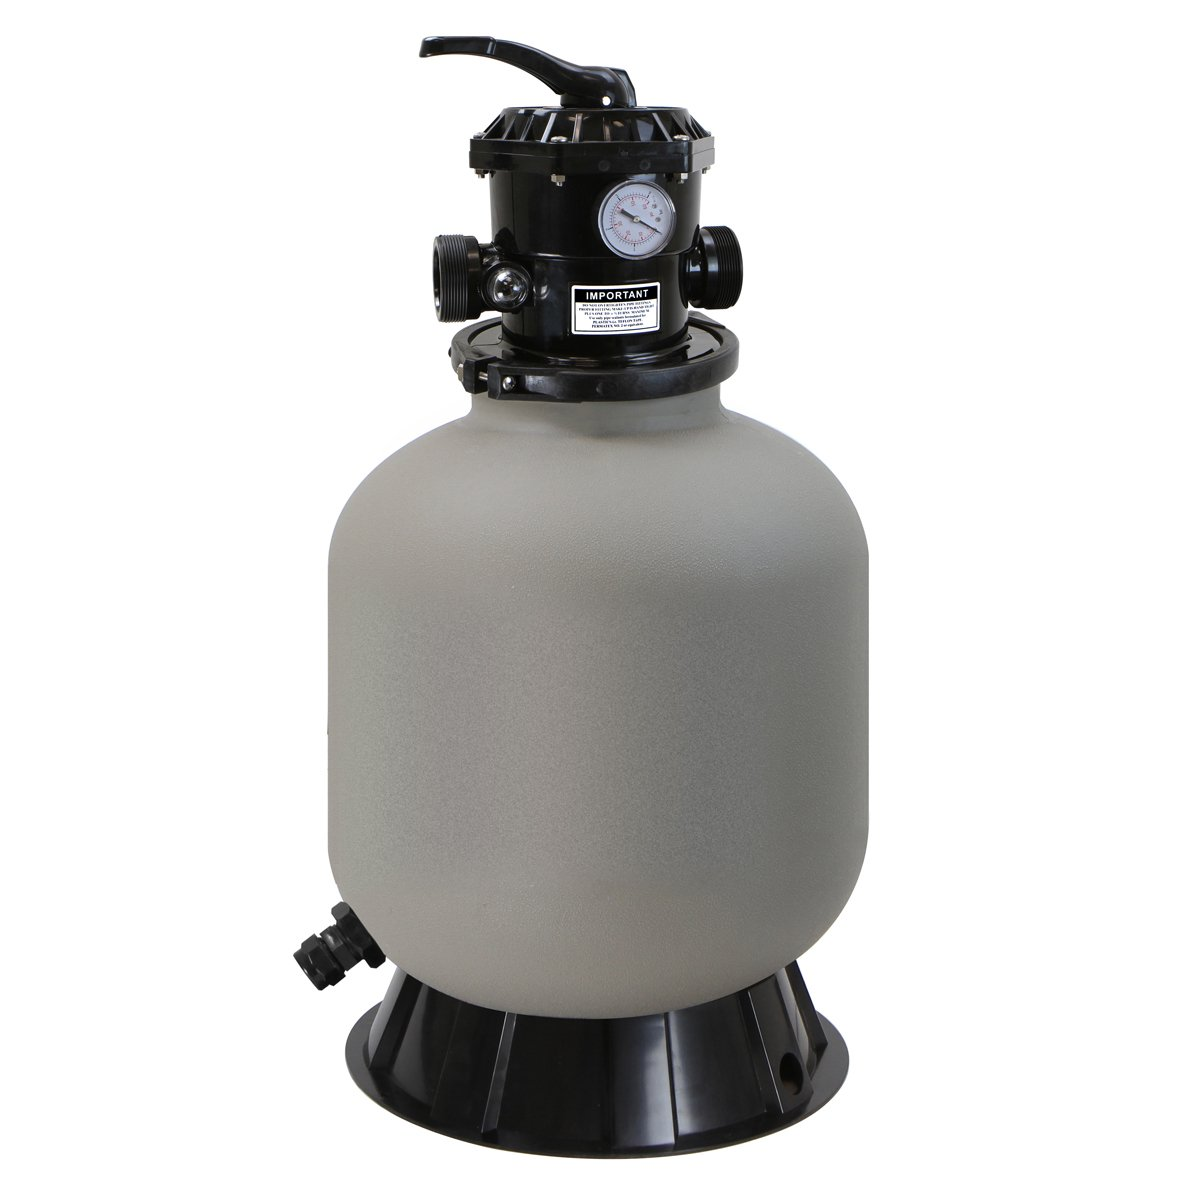 XtremepowerUS 16'' Above Inground Swimming Pool Sand Filter System 7-Way Multi-Port Valve Pool Filter up to 21,000 Gallons with Stand by XtremepowerUS